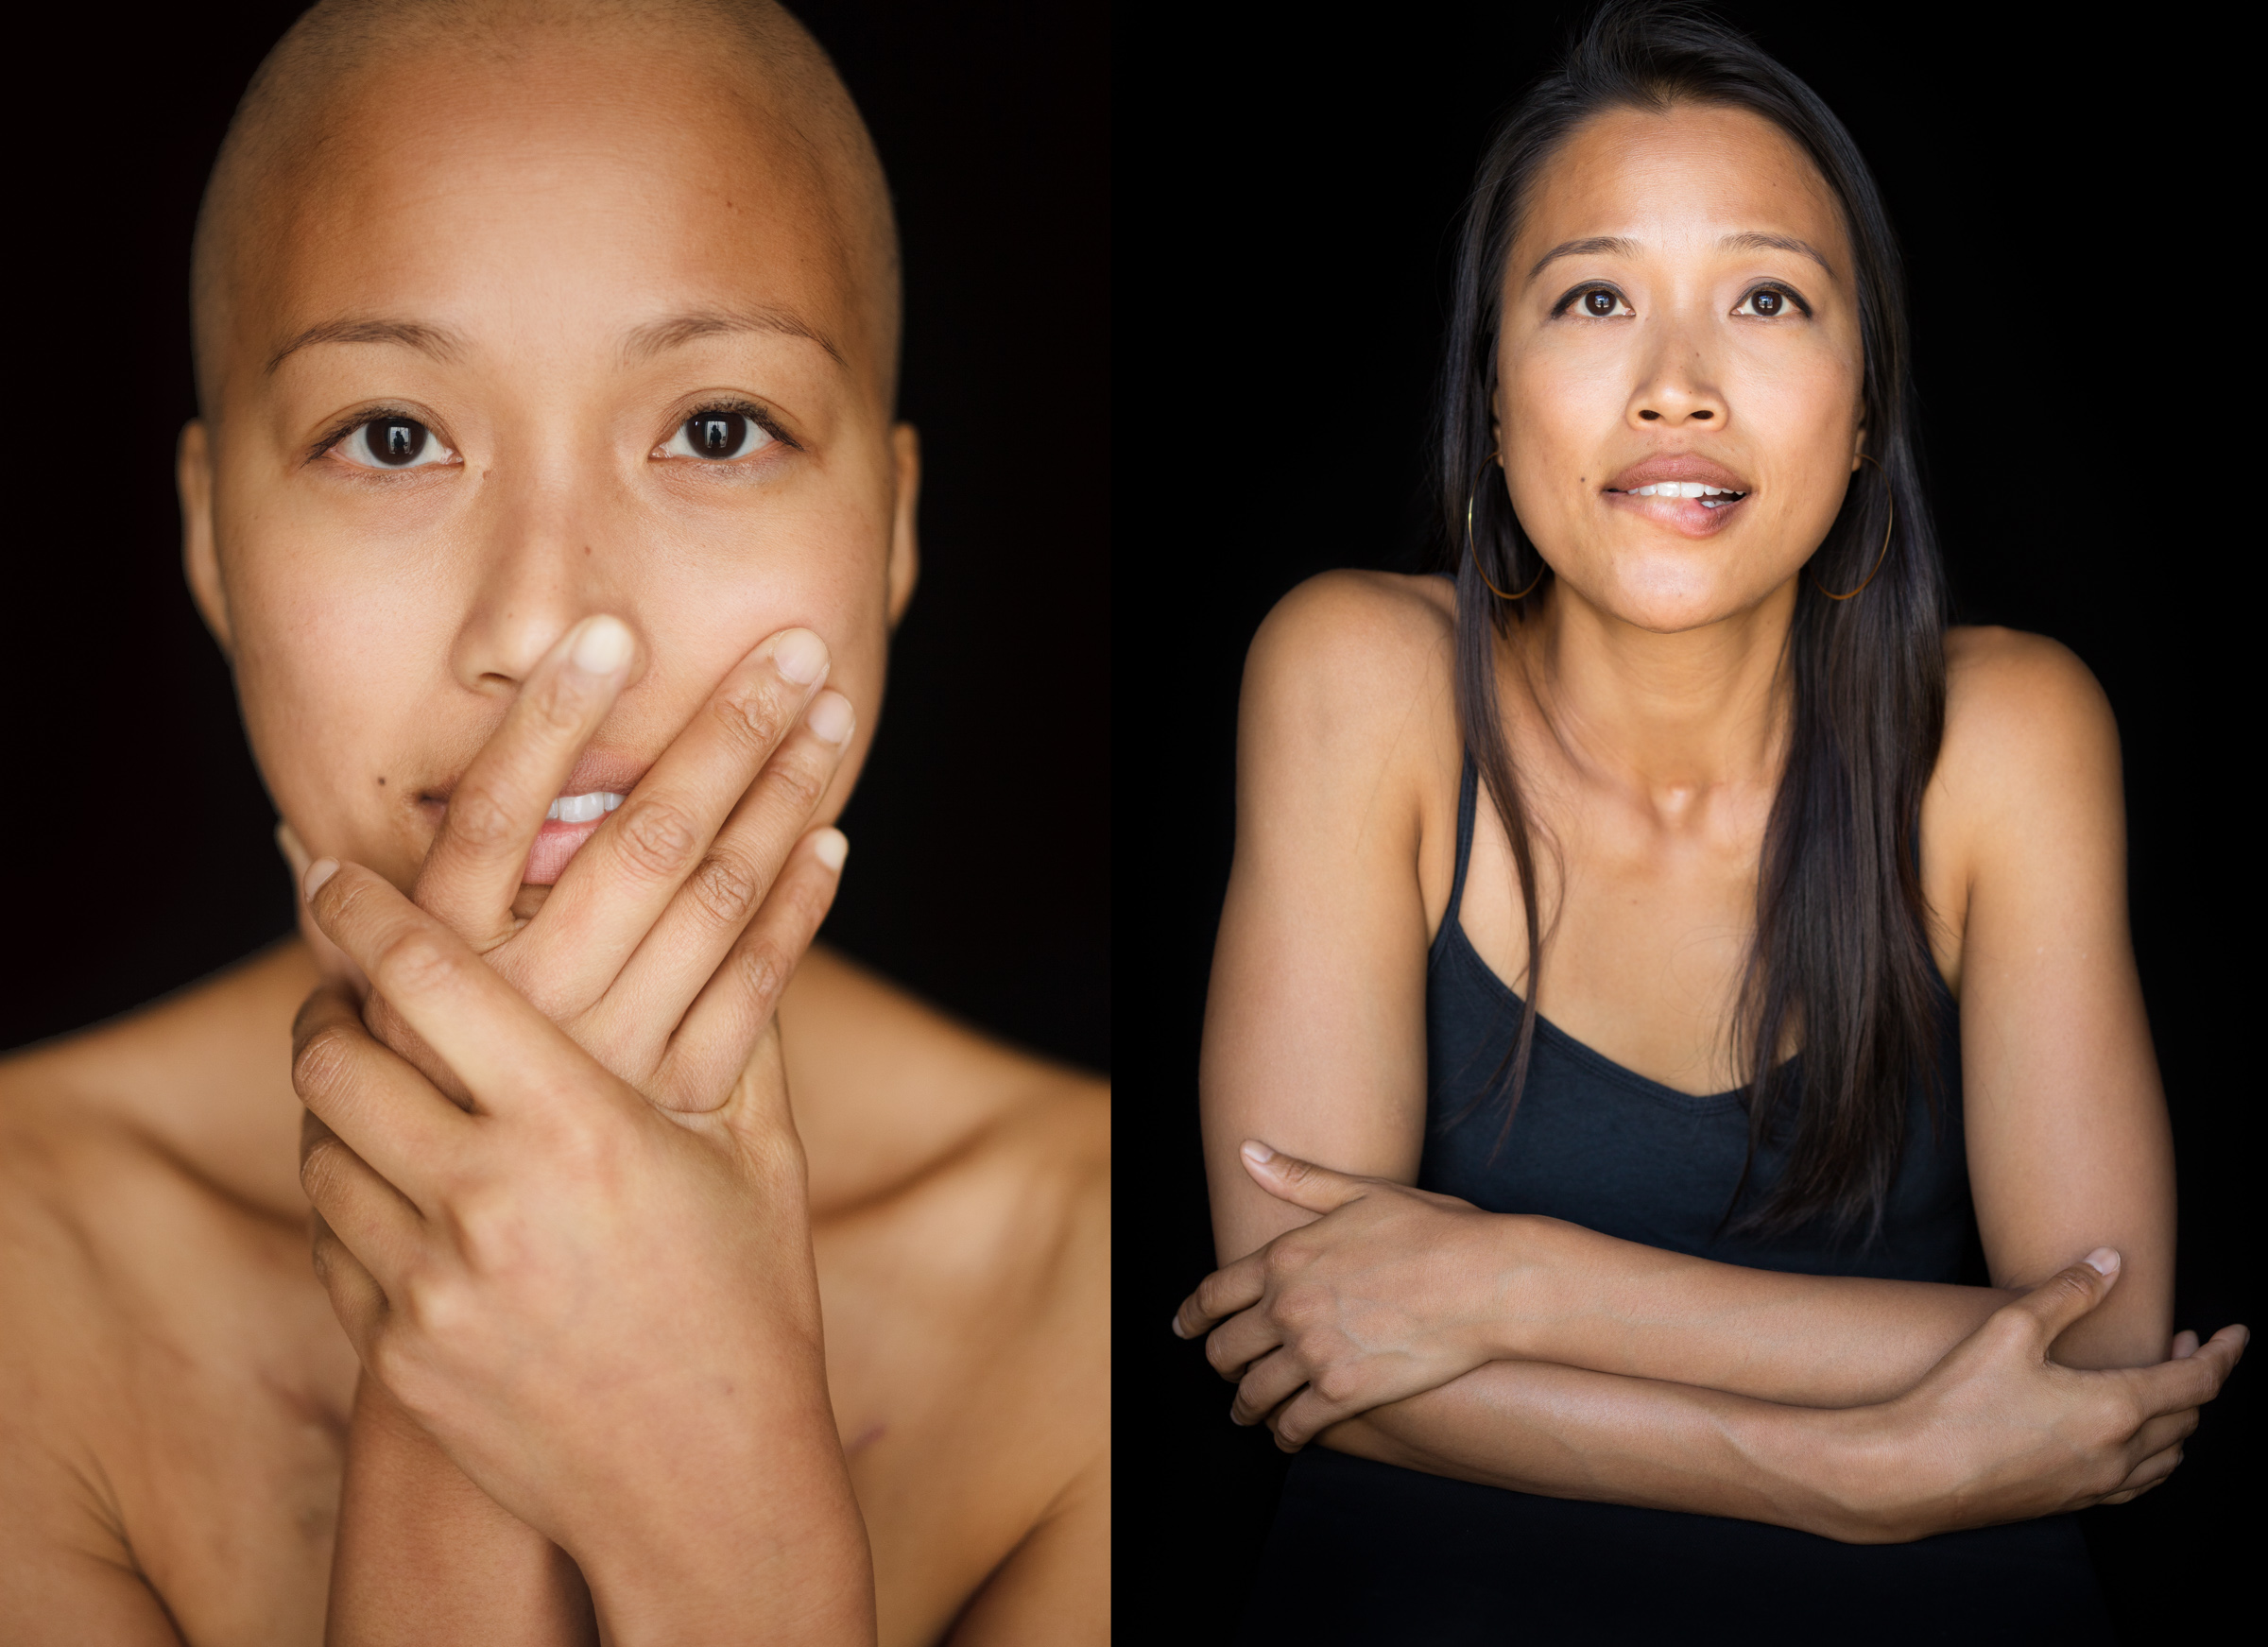 Facing Chemo: Moving Portraits of People Battling Cancer